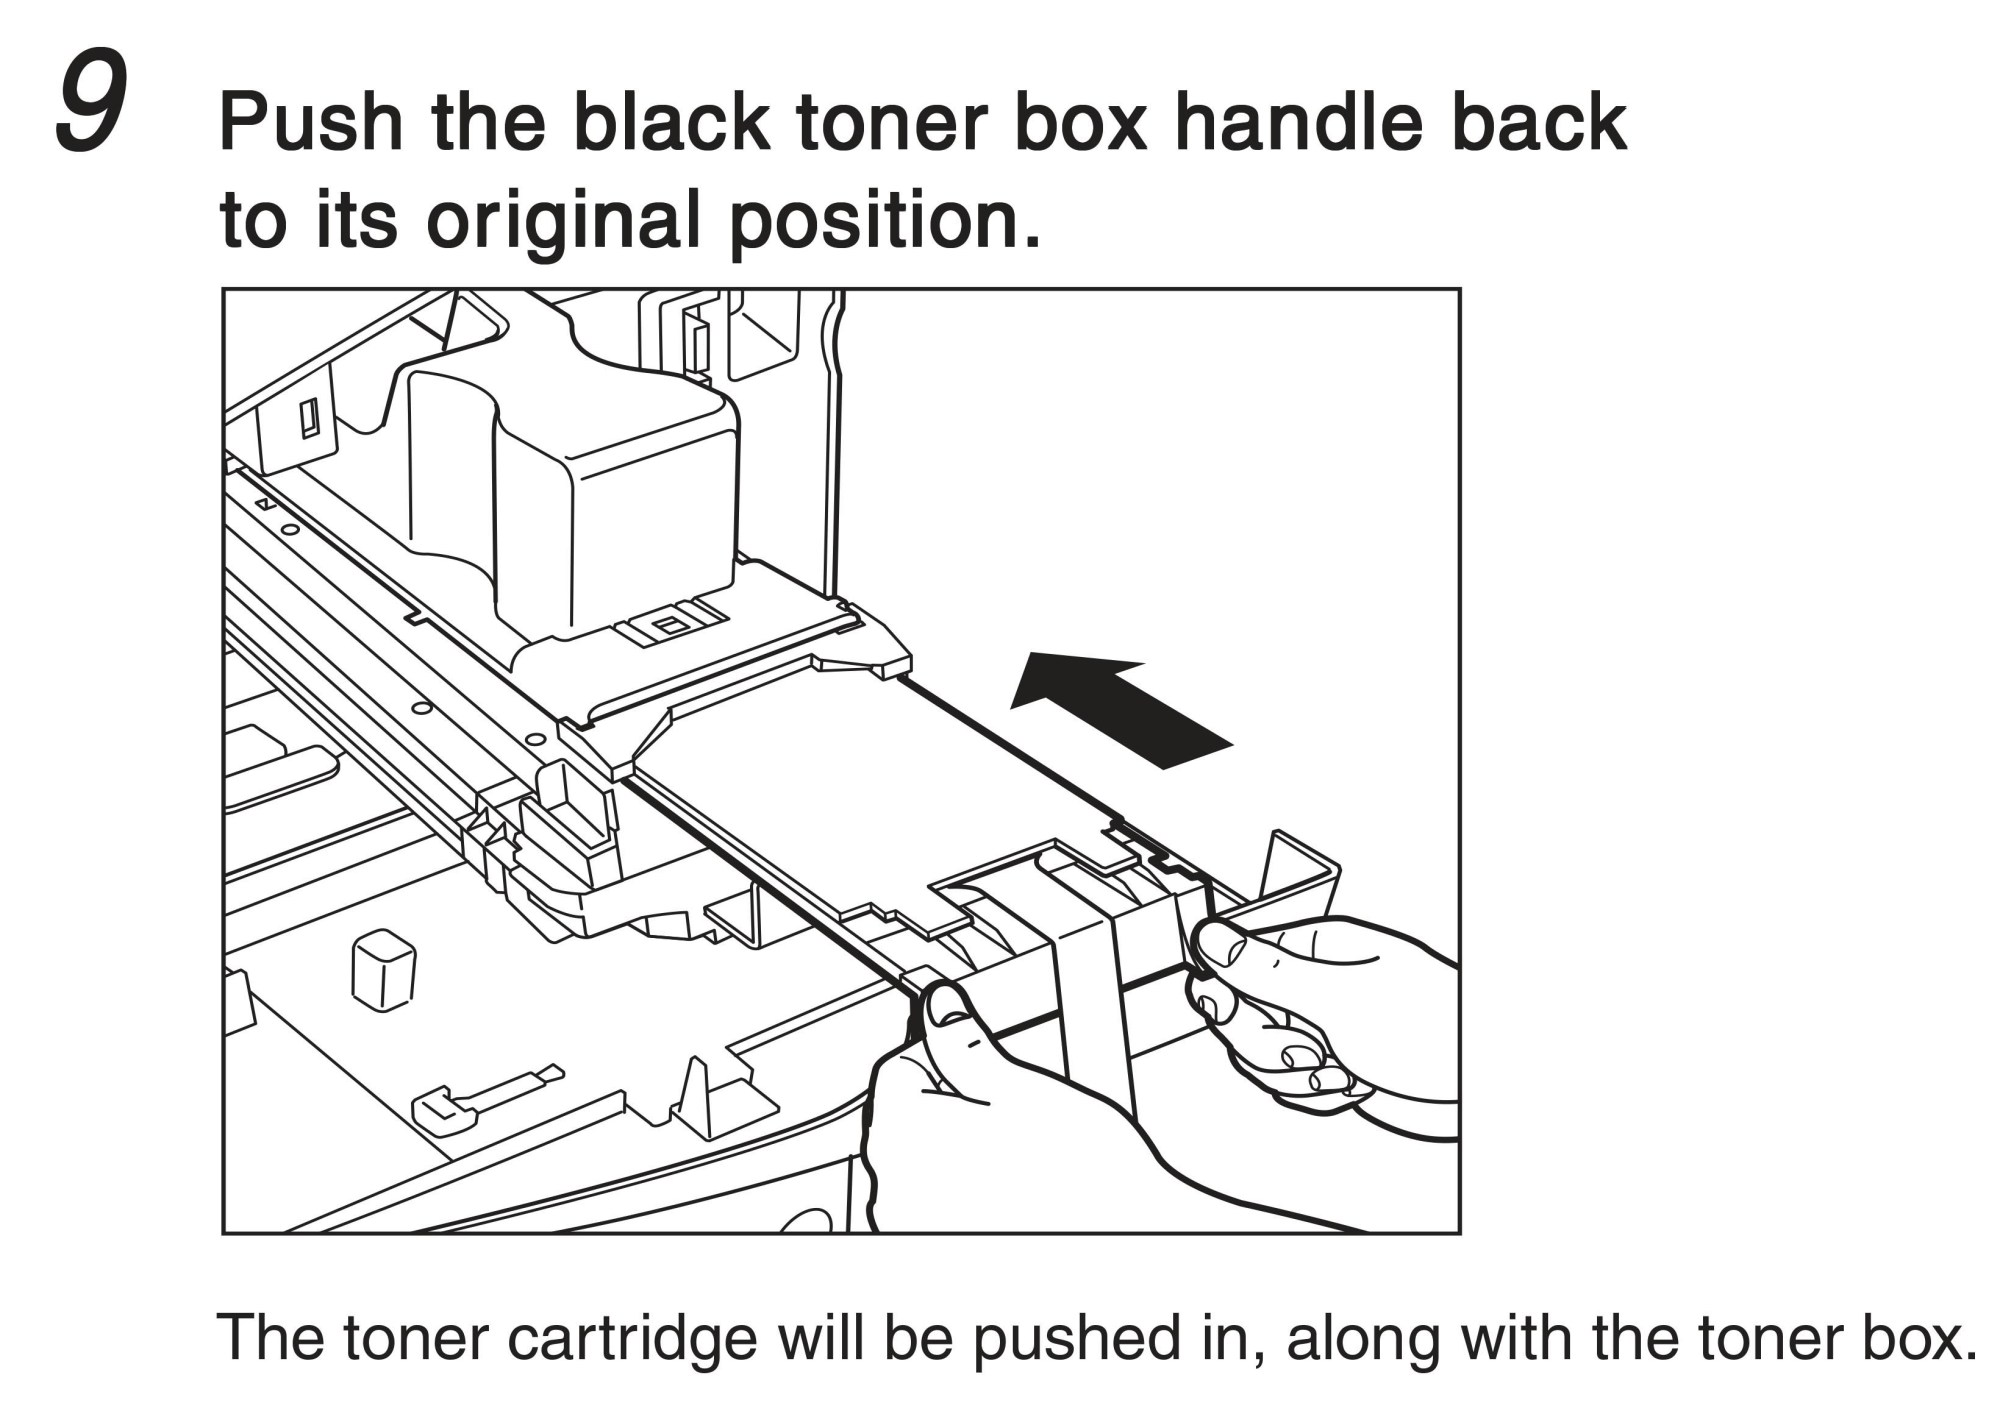 hight resolution of push the black toner box handle back to its original position the tonar